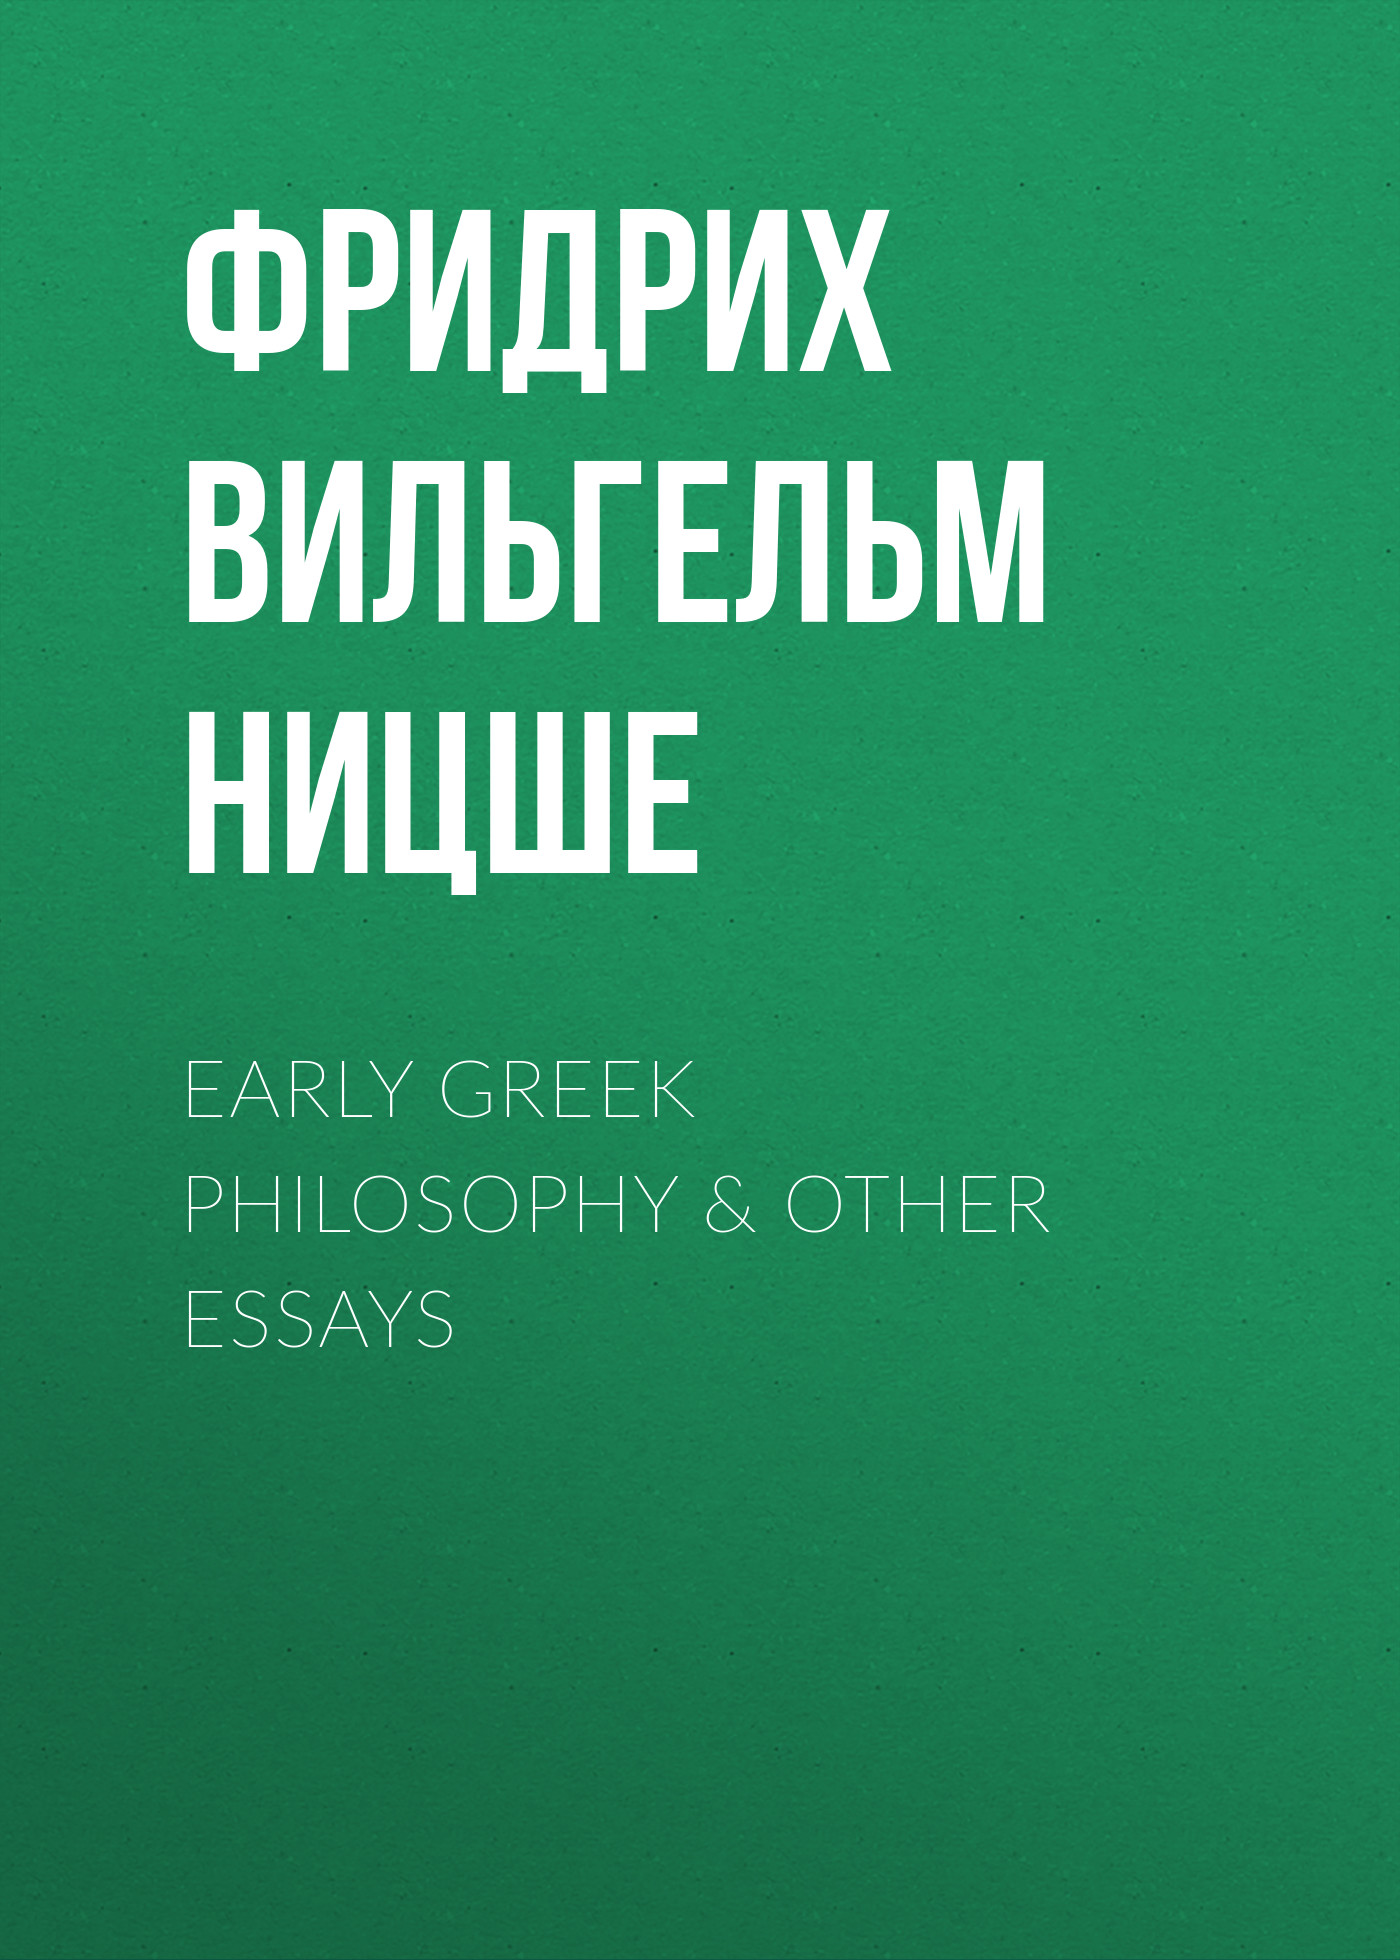 Фридрих Вильгельм Ницше Early Greek Philosophy & Other Essays